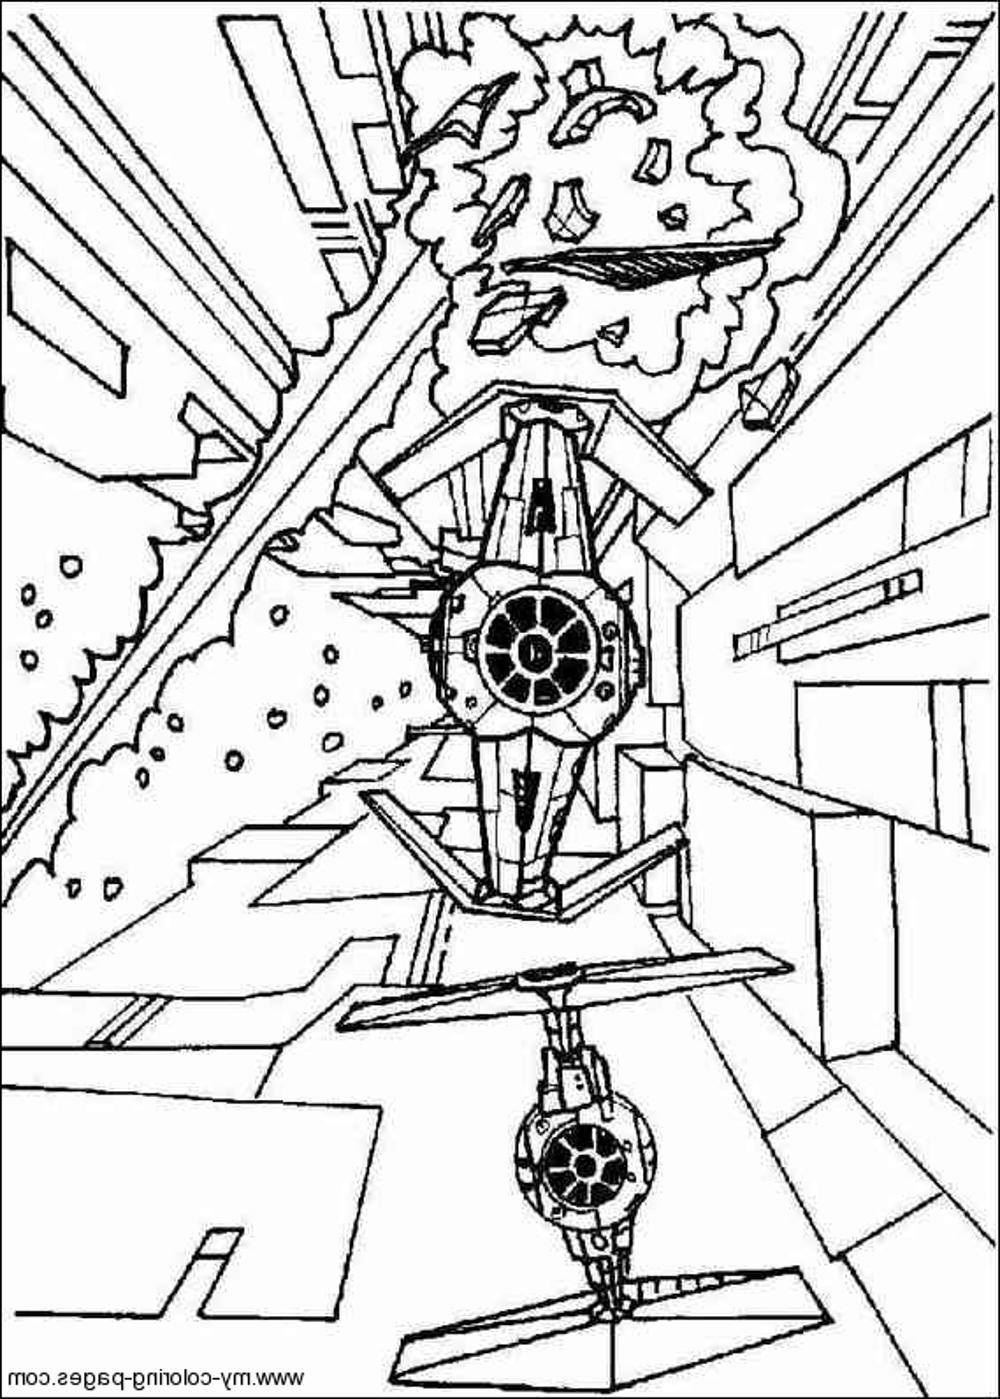 lego free printable coloring pages lego ninjago coloring pages best coloring pages for kids coloring printable free lego pages